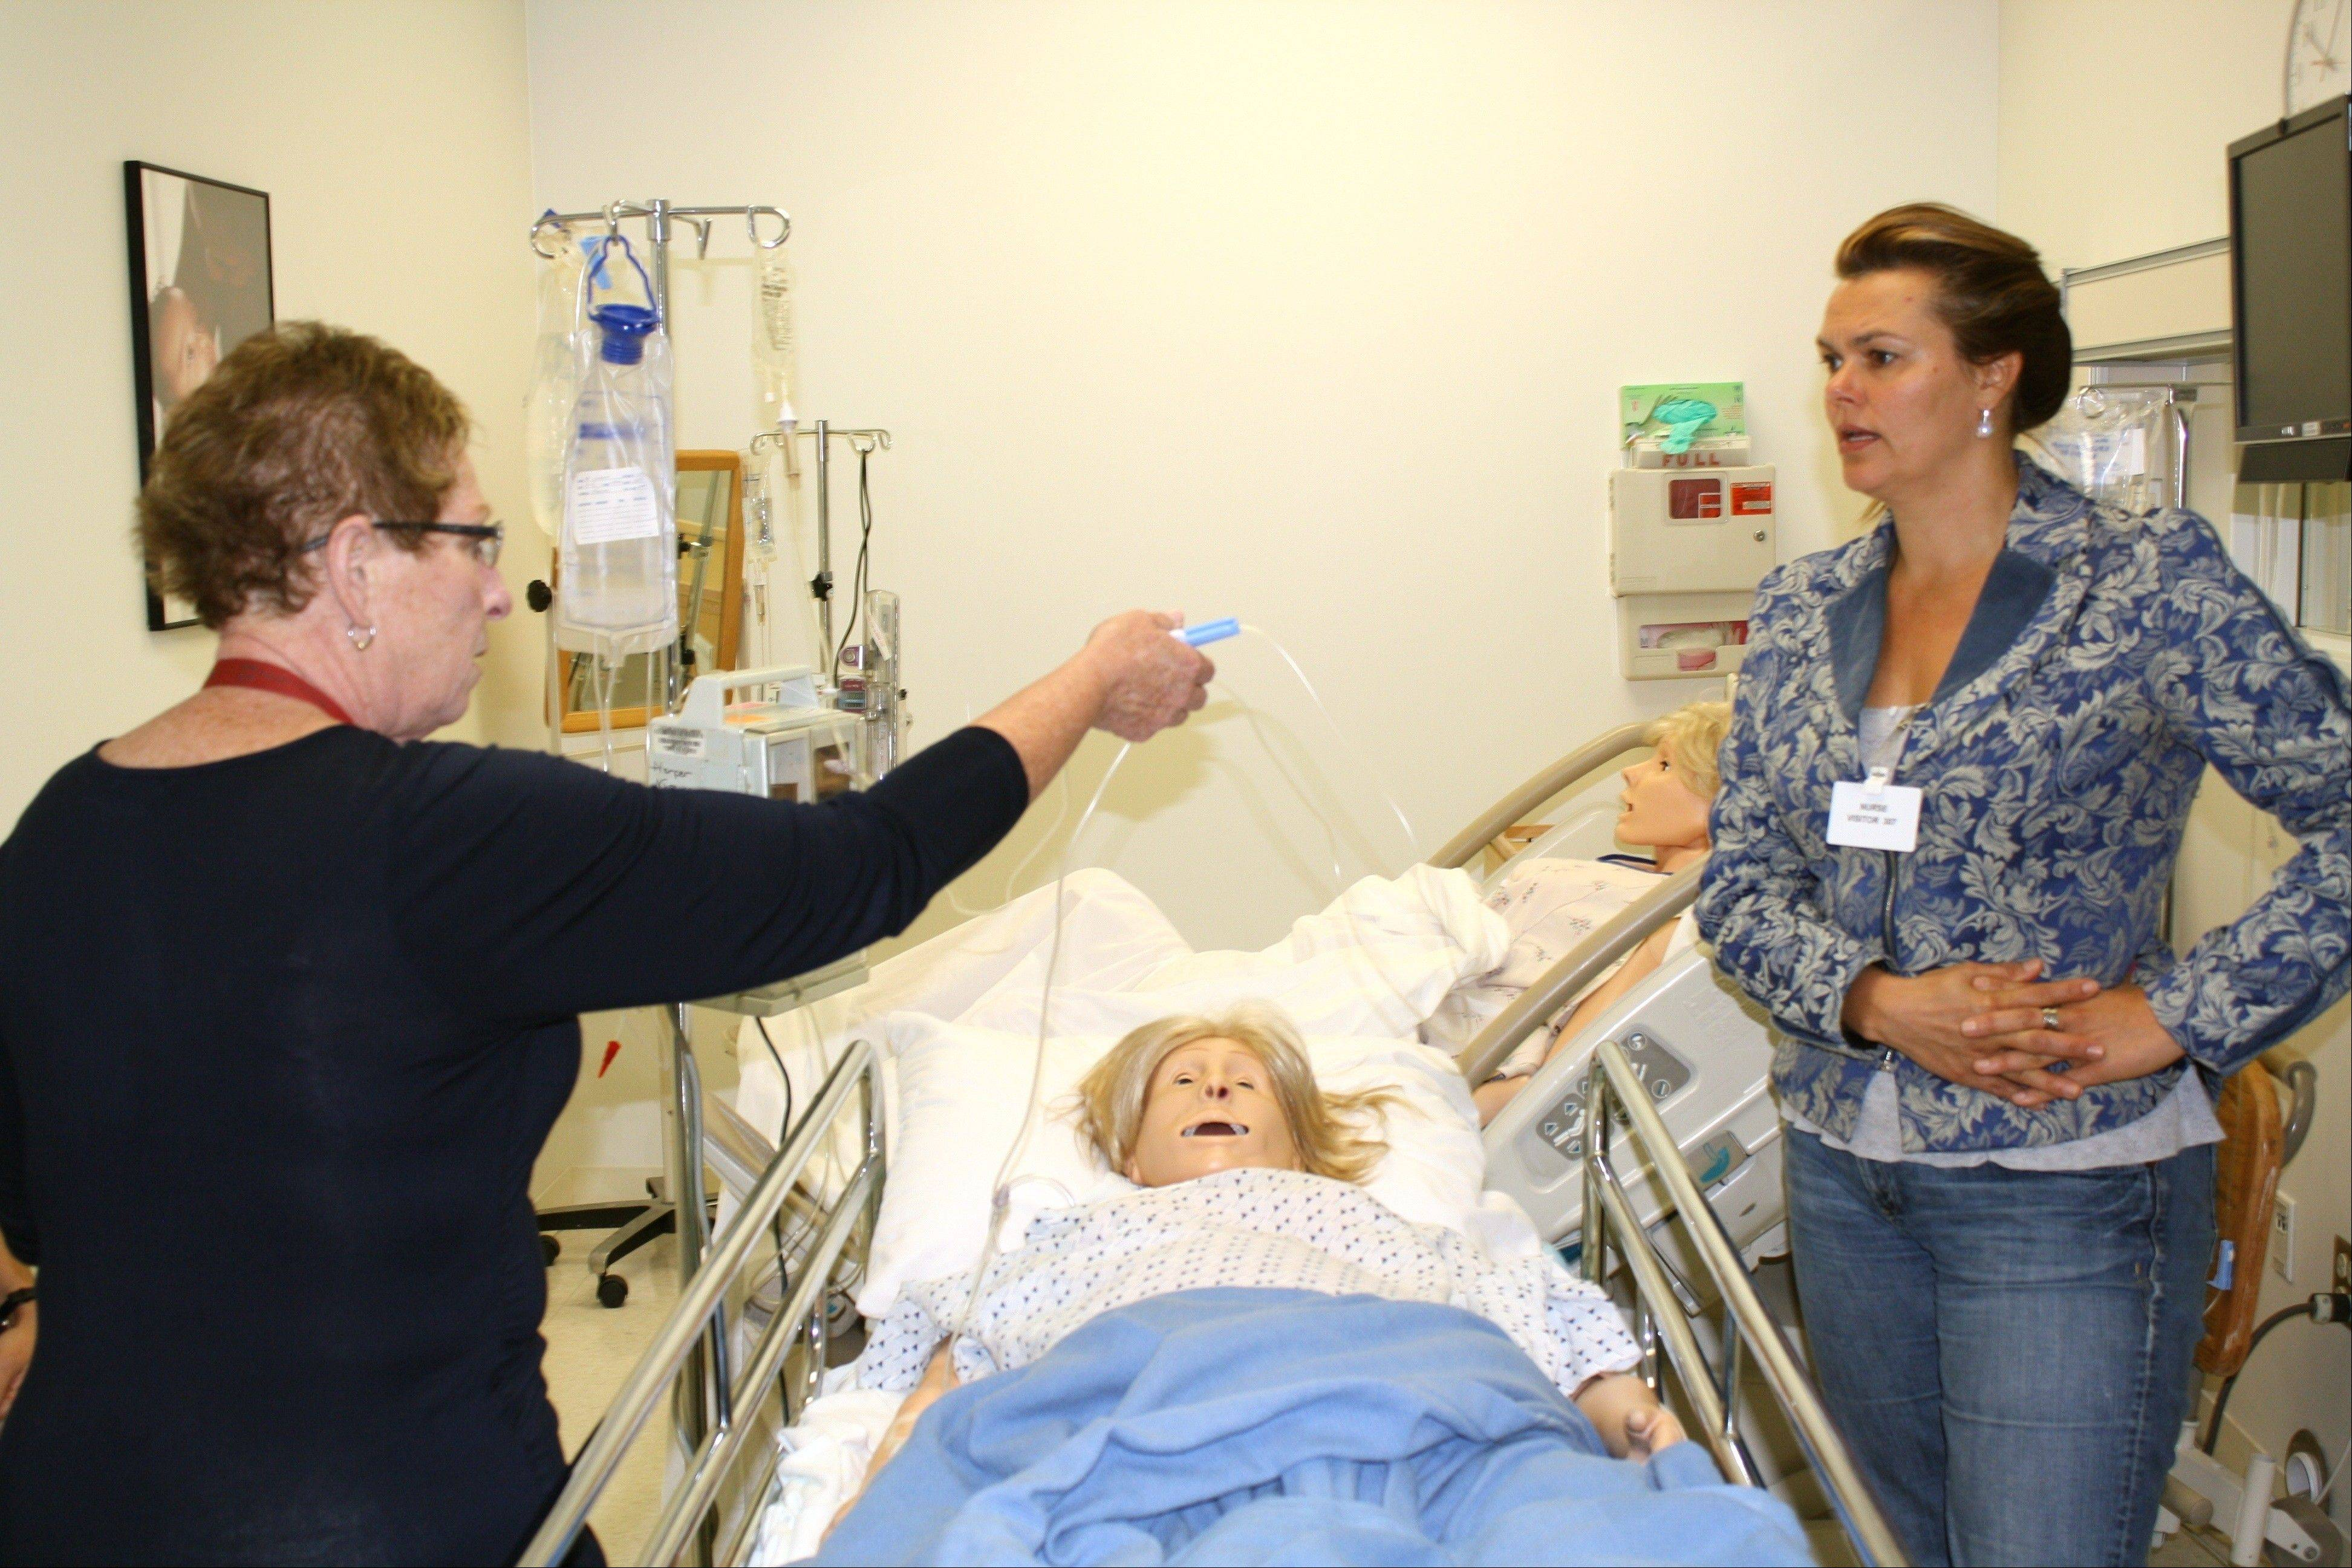 Pat Egel, left, a clinical supervisor at the Simulation Hospital at Harper College, shows Netherlands visitor Linda Kronenberg how new nurses are educated.